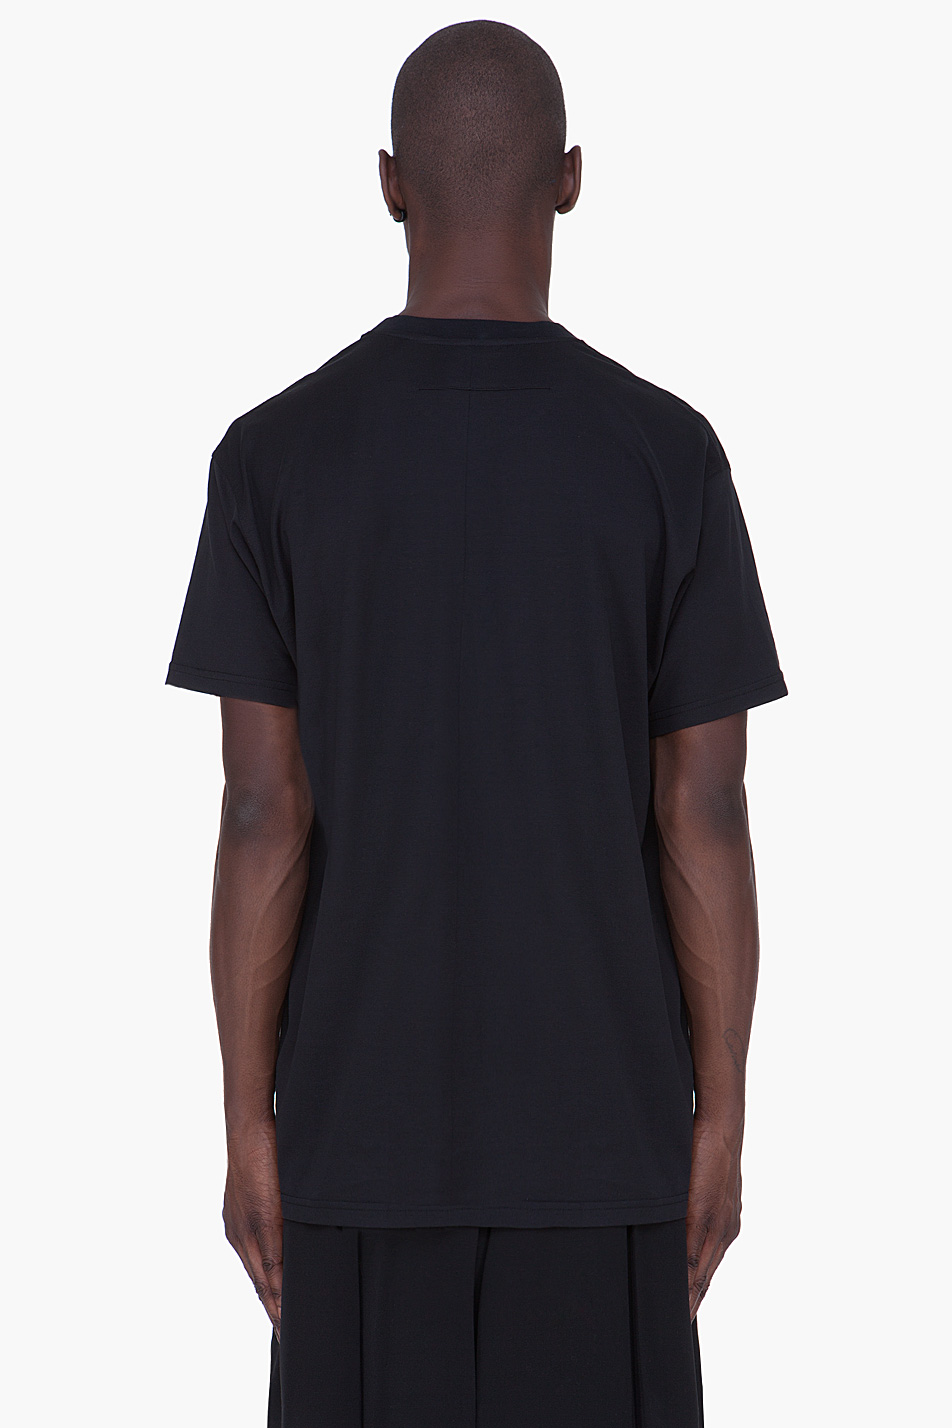 Lyst - Givenchy Black La Colombian Fit Tshirt In Black For Men-8350